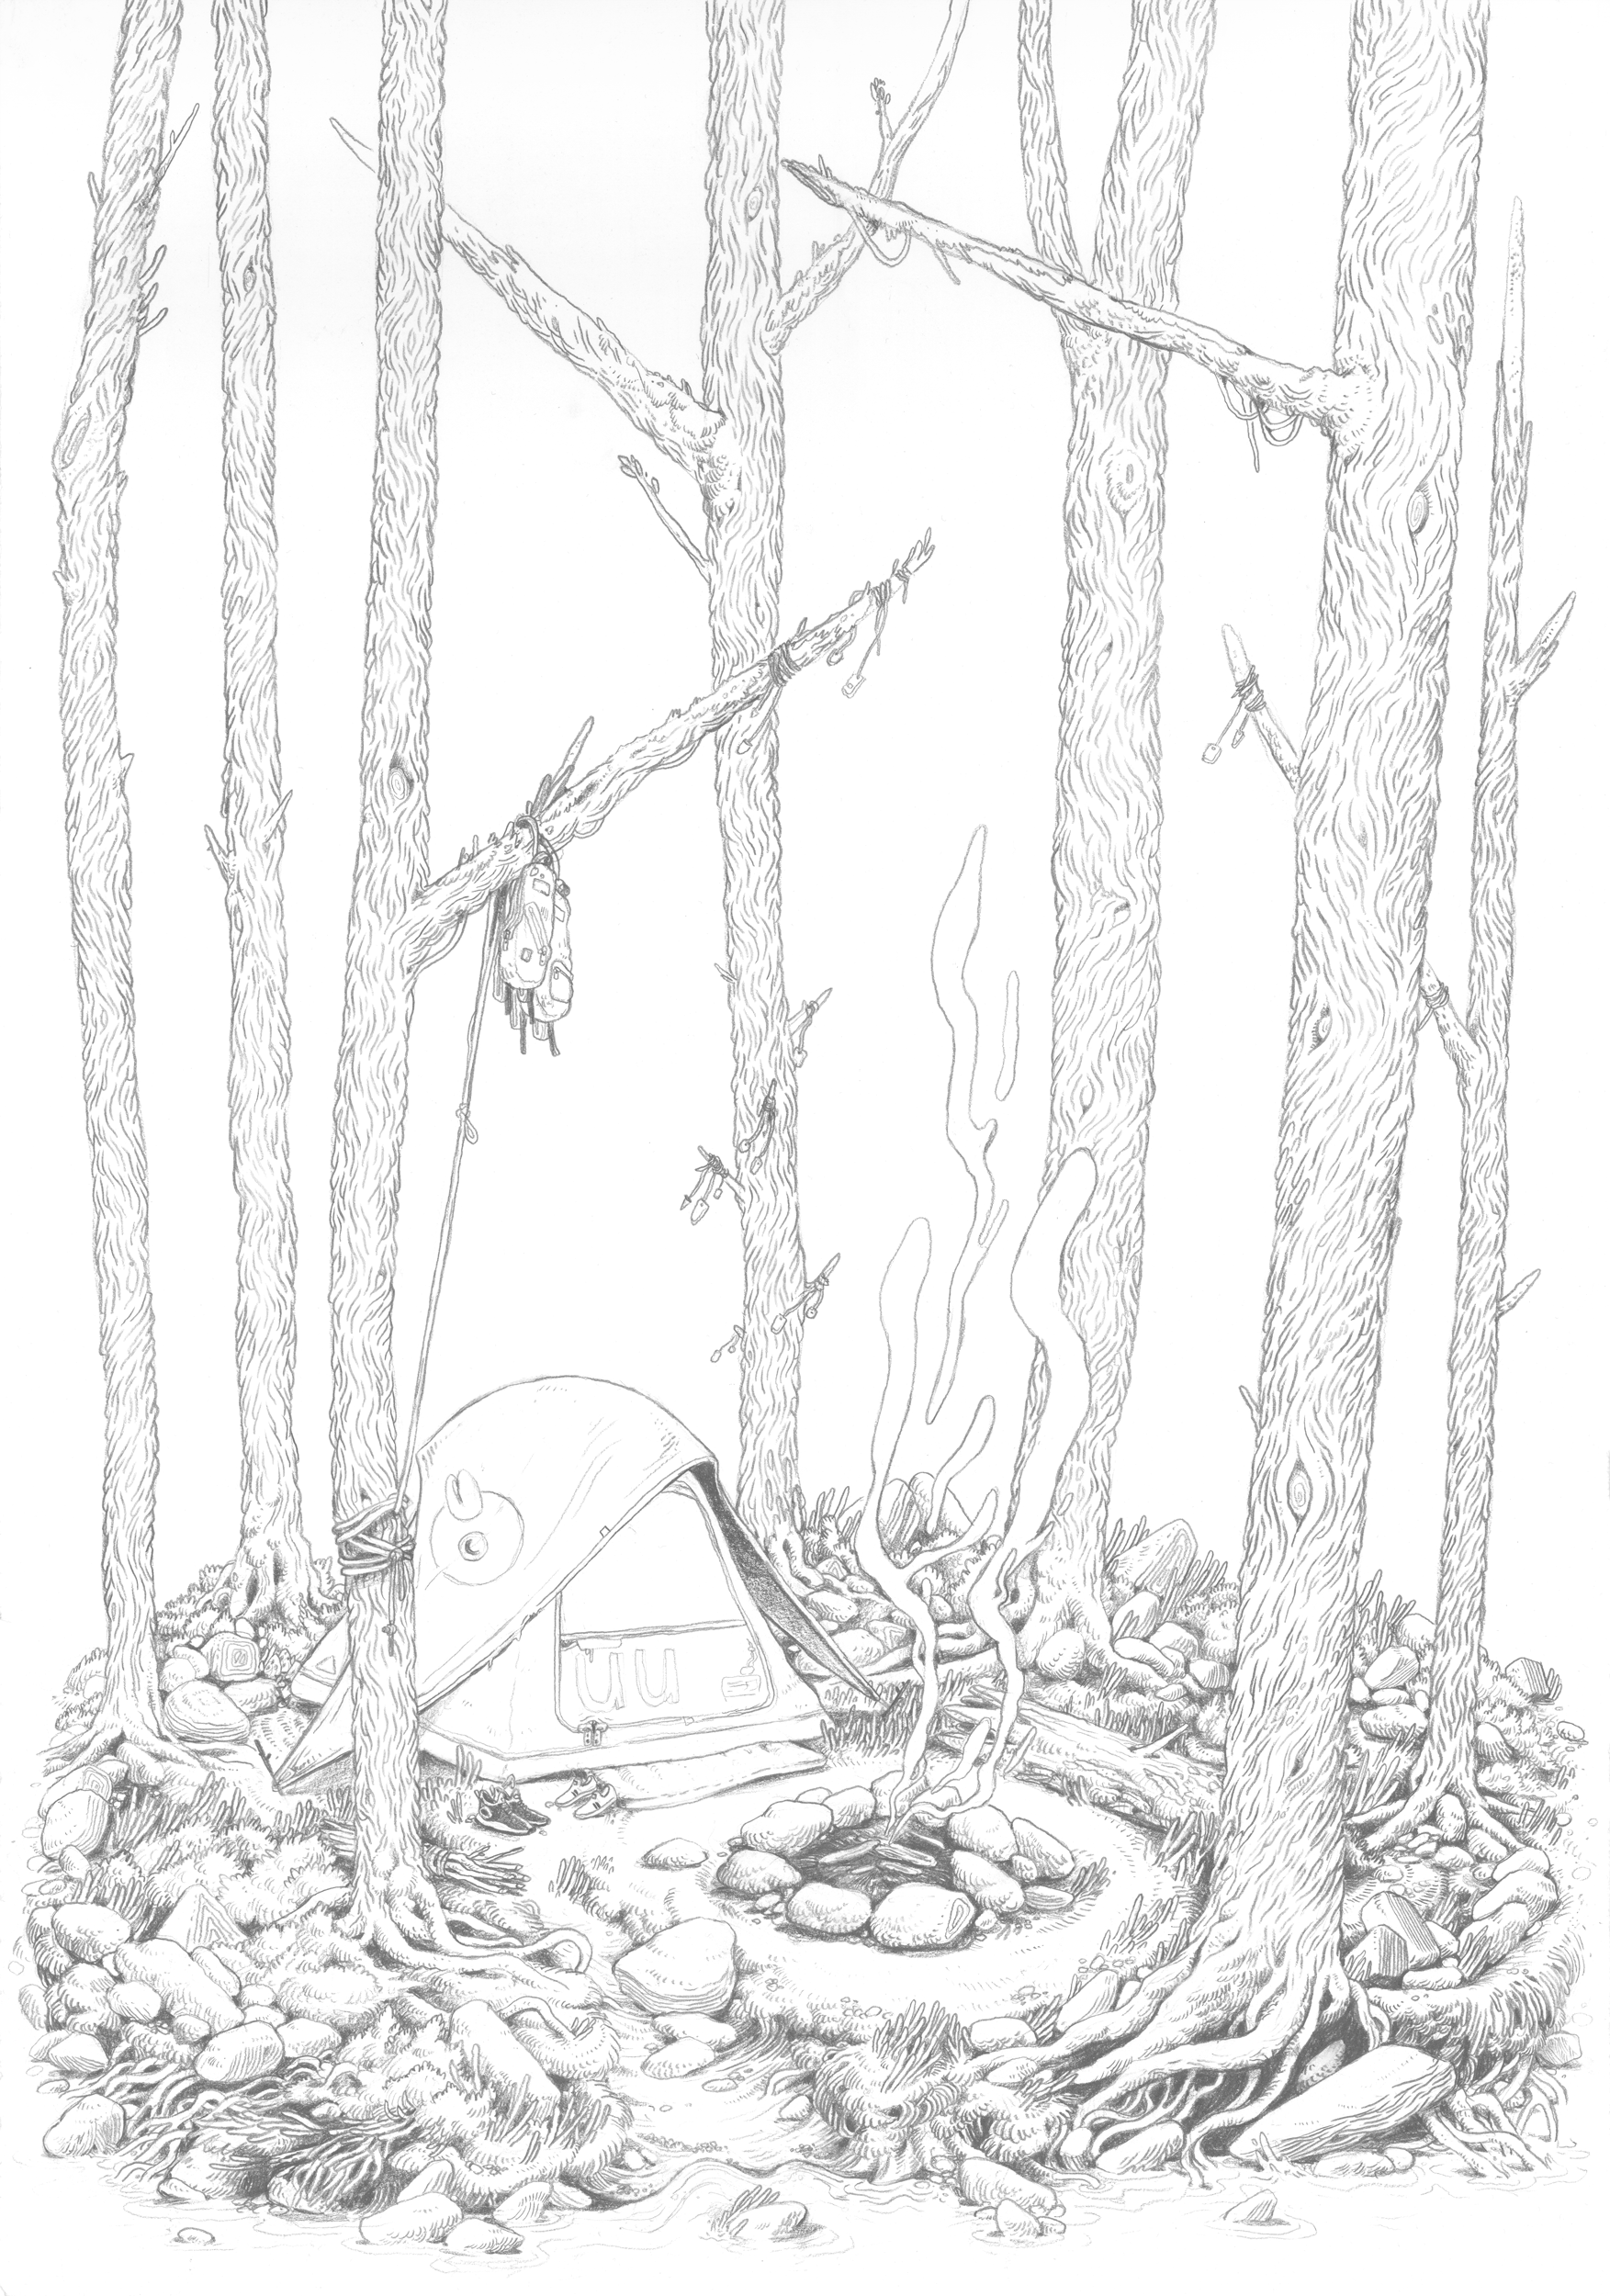 """Camp Site"" Pencil on paper (2019)"